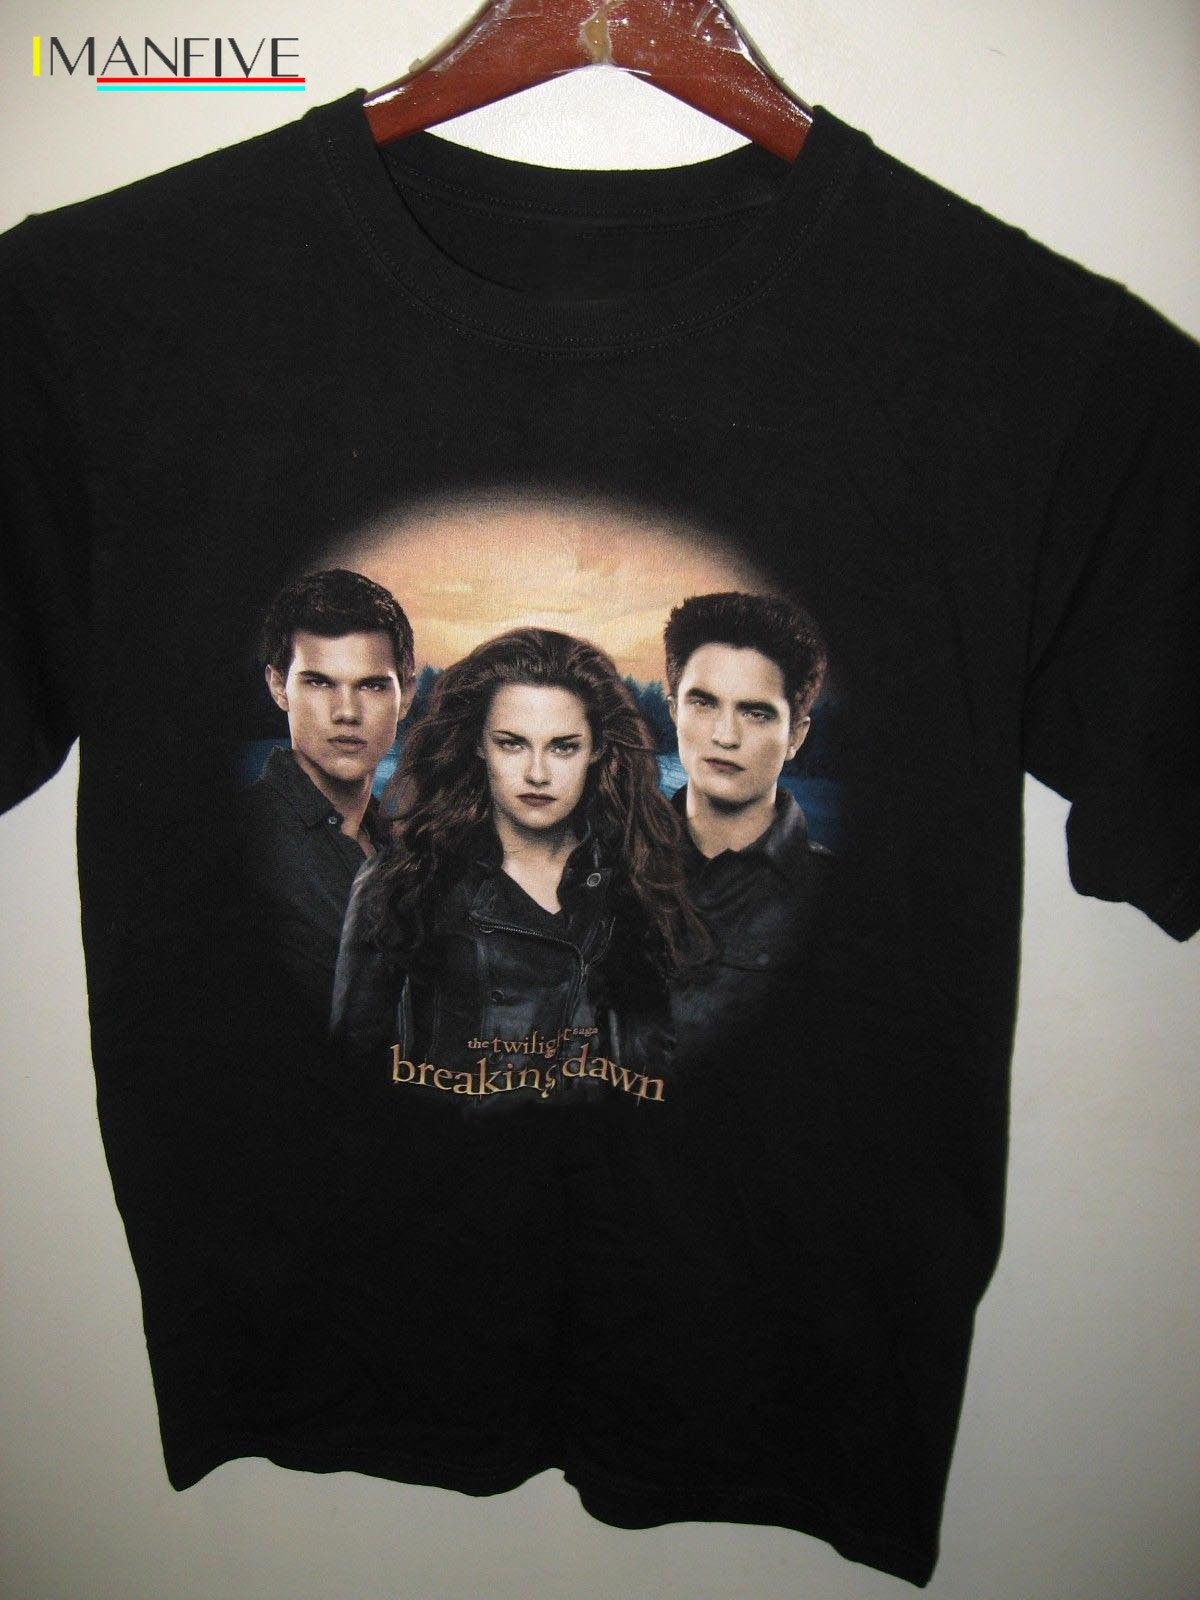 Breaking Dawn The Twilight Saga Part 2 Taylor Lautner 2012 Movie T Shirt shirt Summer The New Fashion For Short Sleeve image